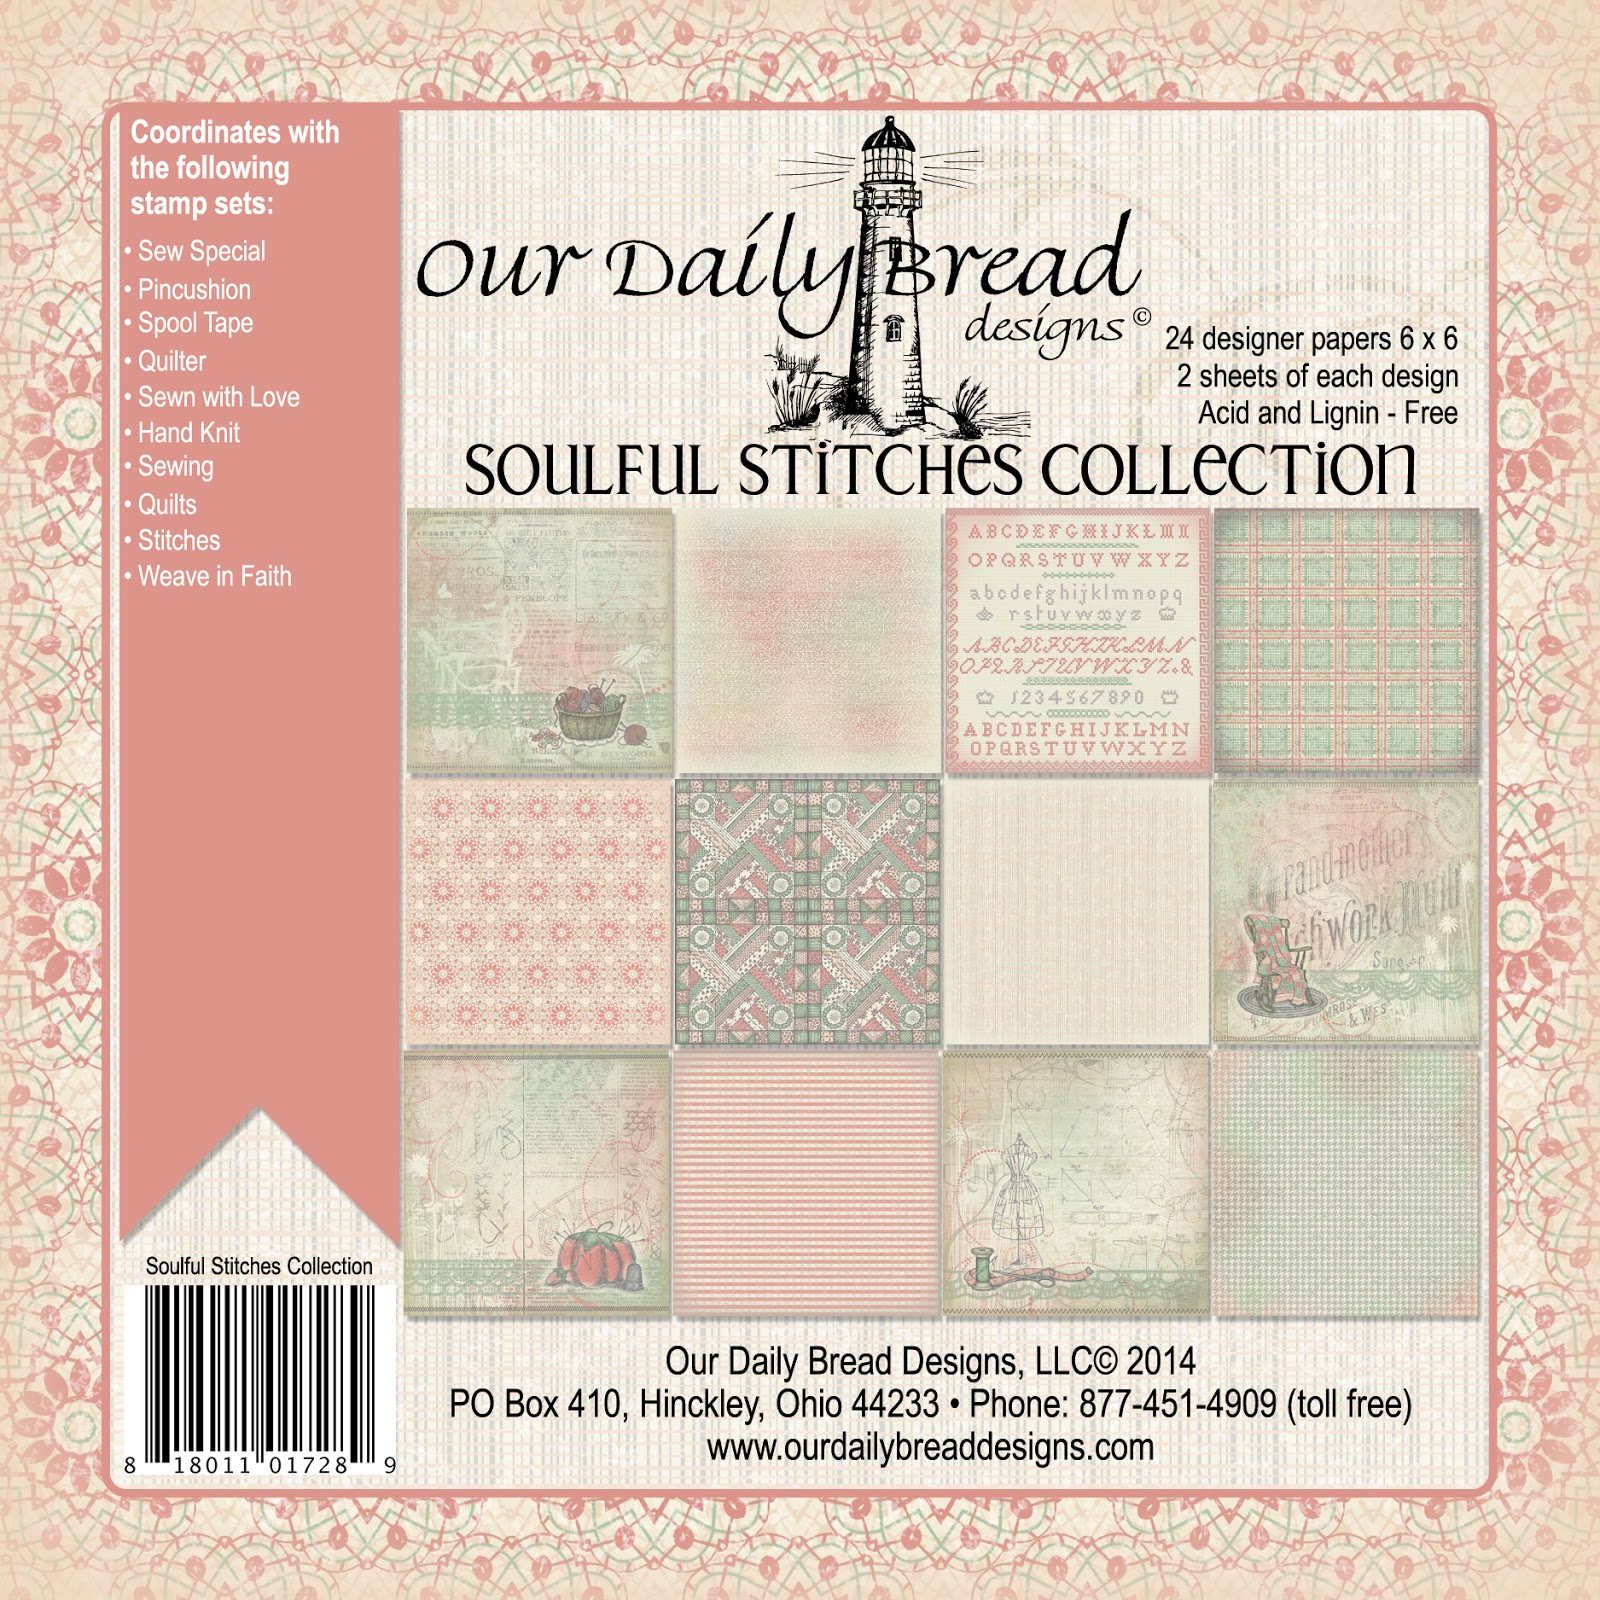 https://www.ourdailybreaddesigns.com/index.php/soulful-stitches-collection-6x6-paper-pad.html